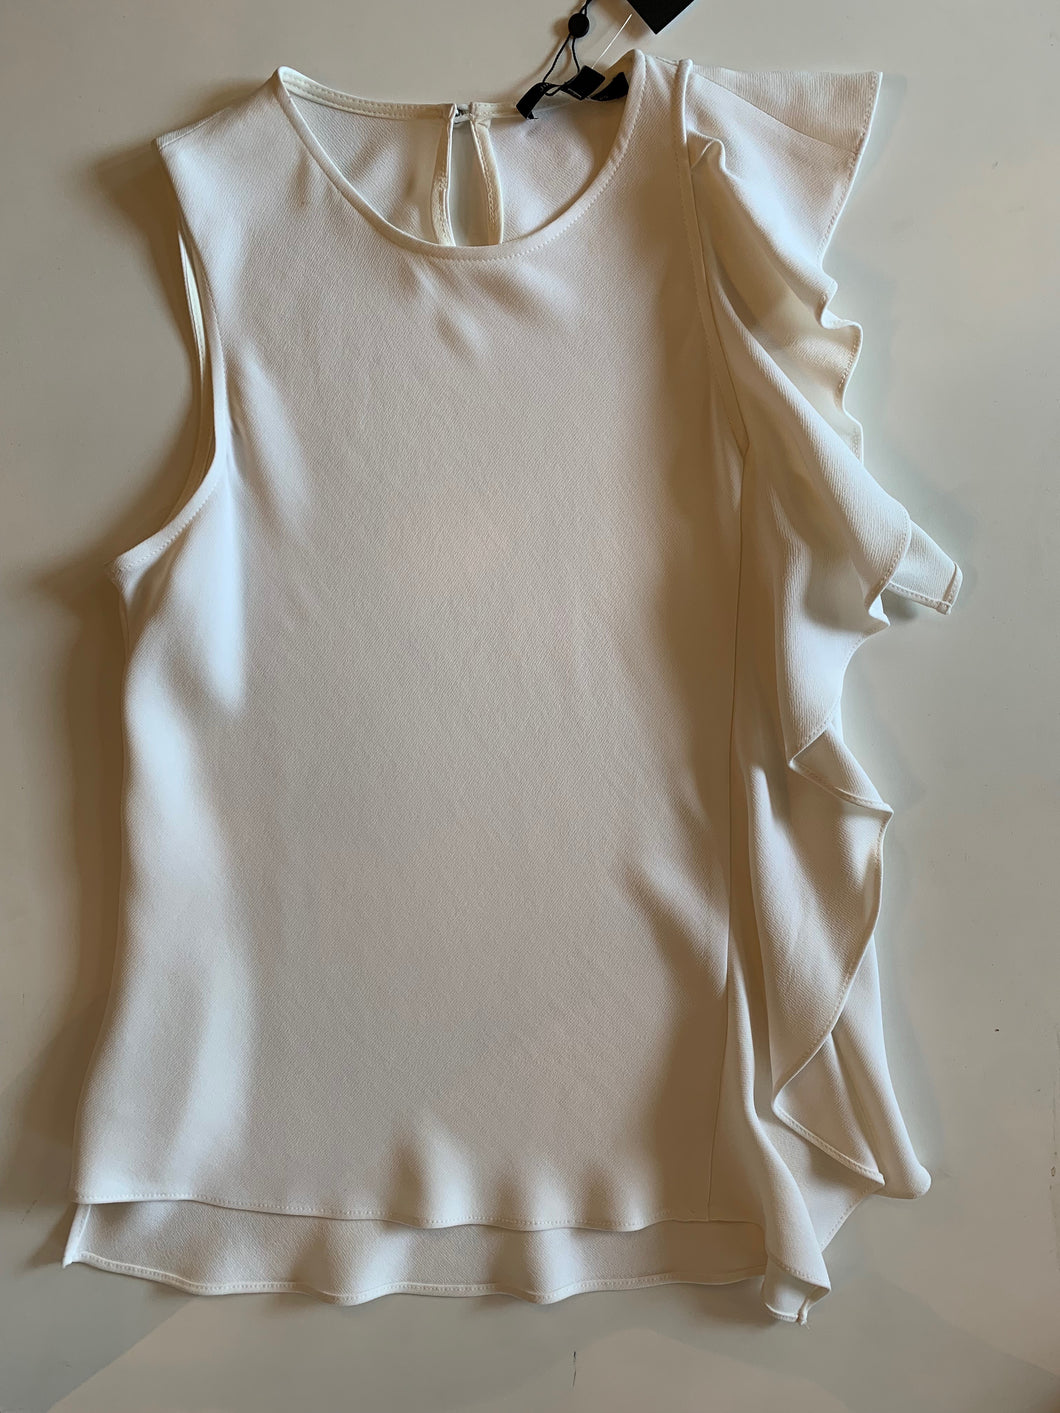 Judith & Charles Sumie Blouse - Off White